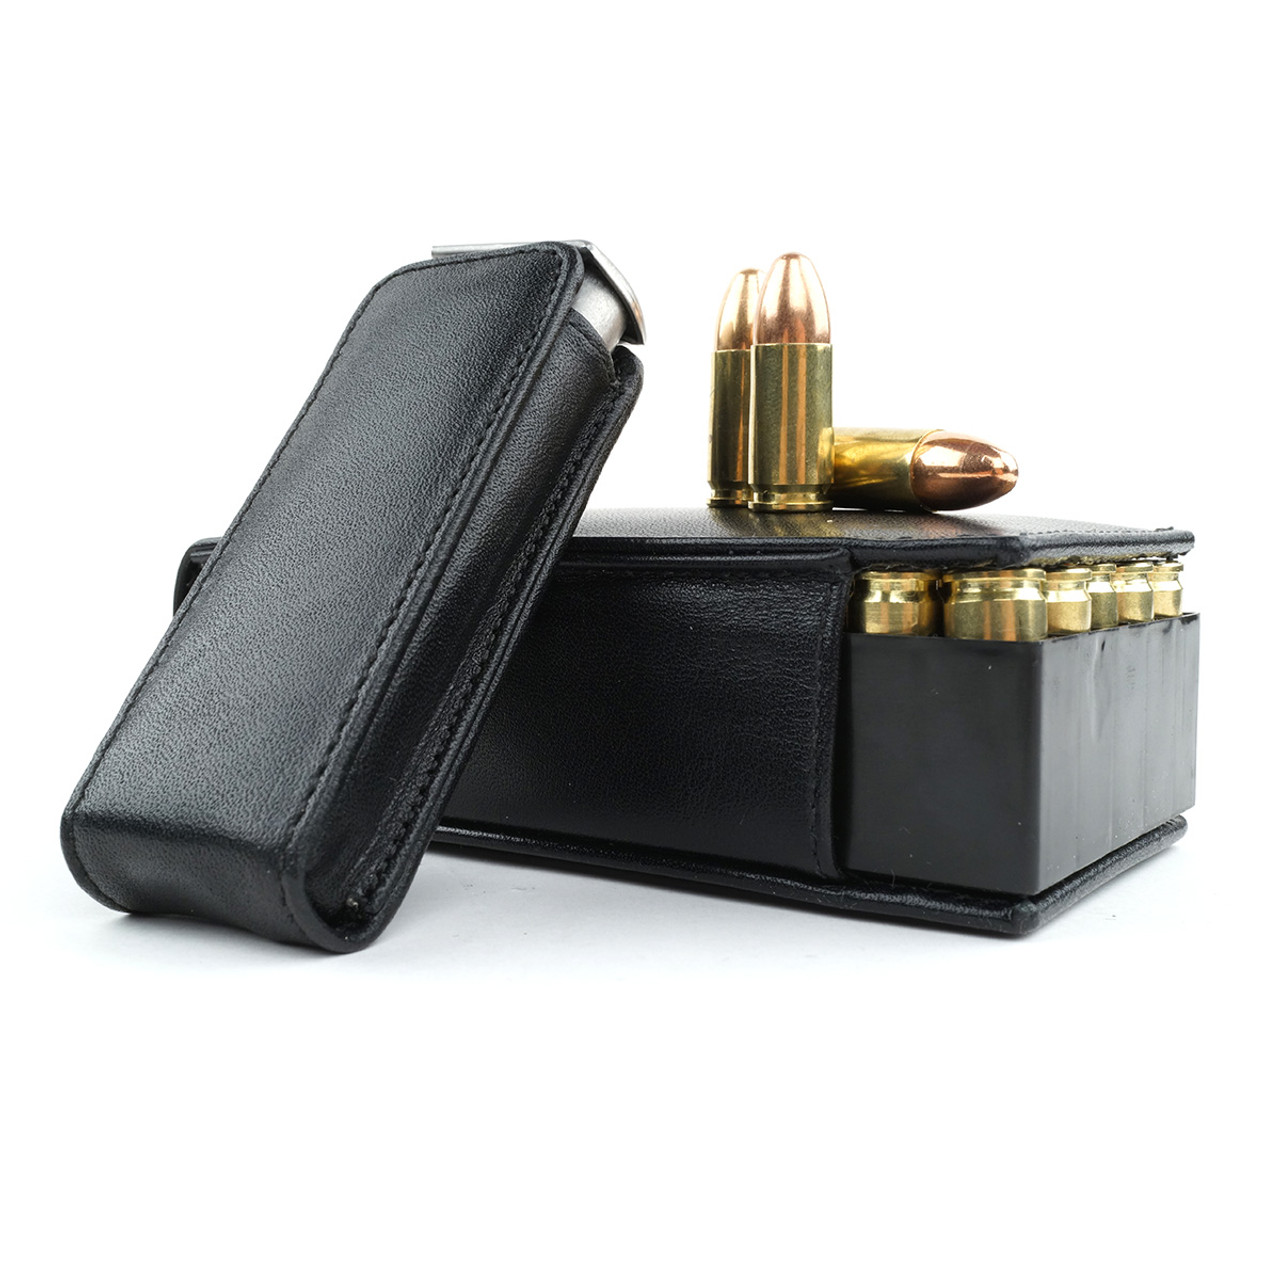 Glock 19 Leather Bullet Brick